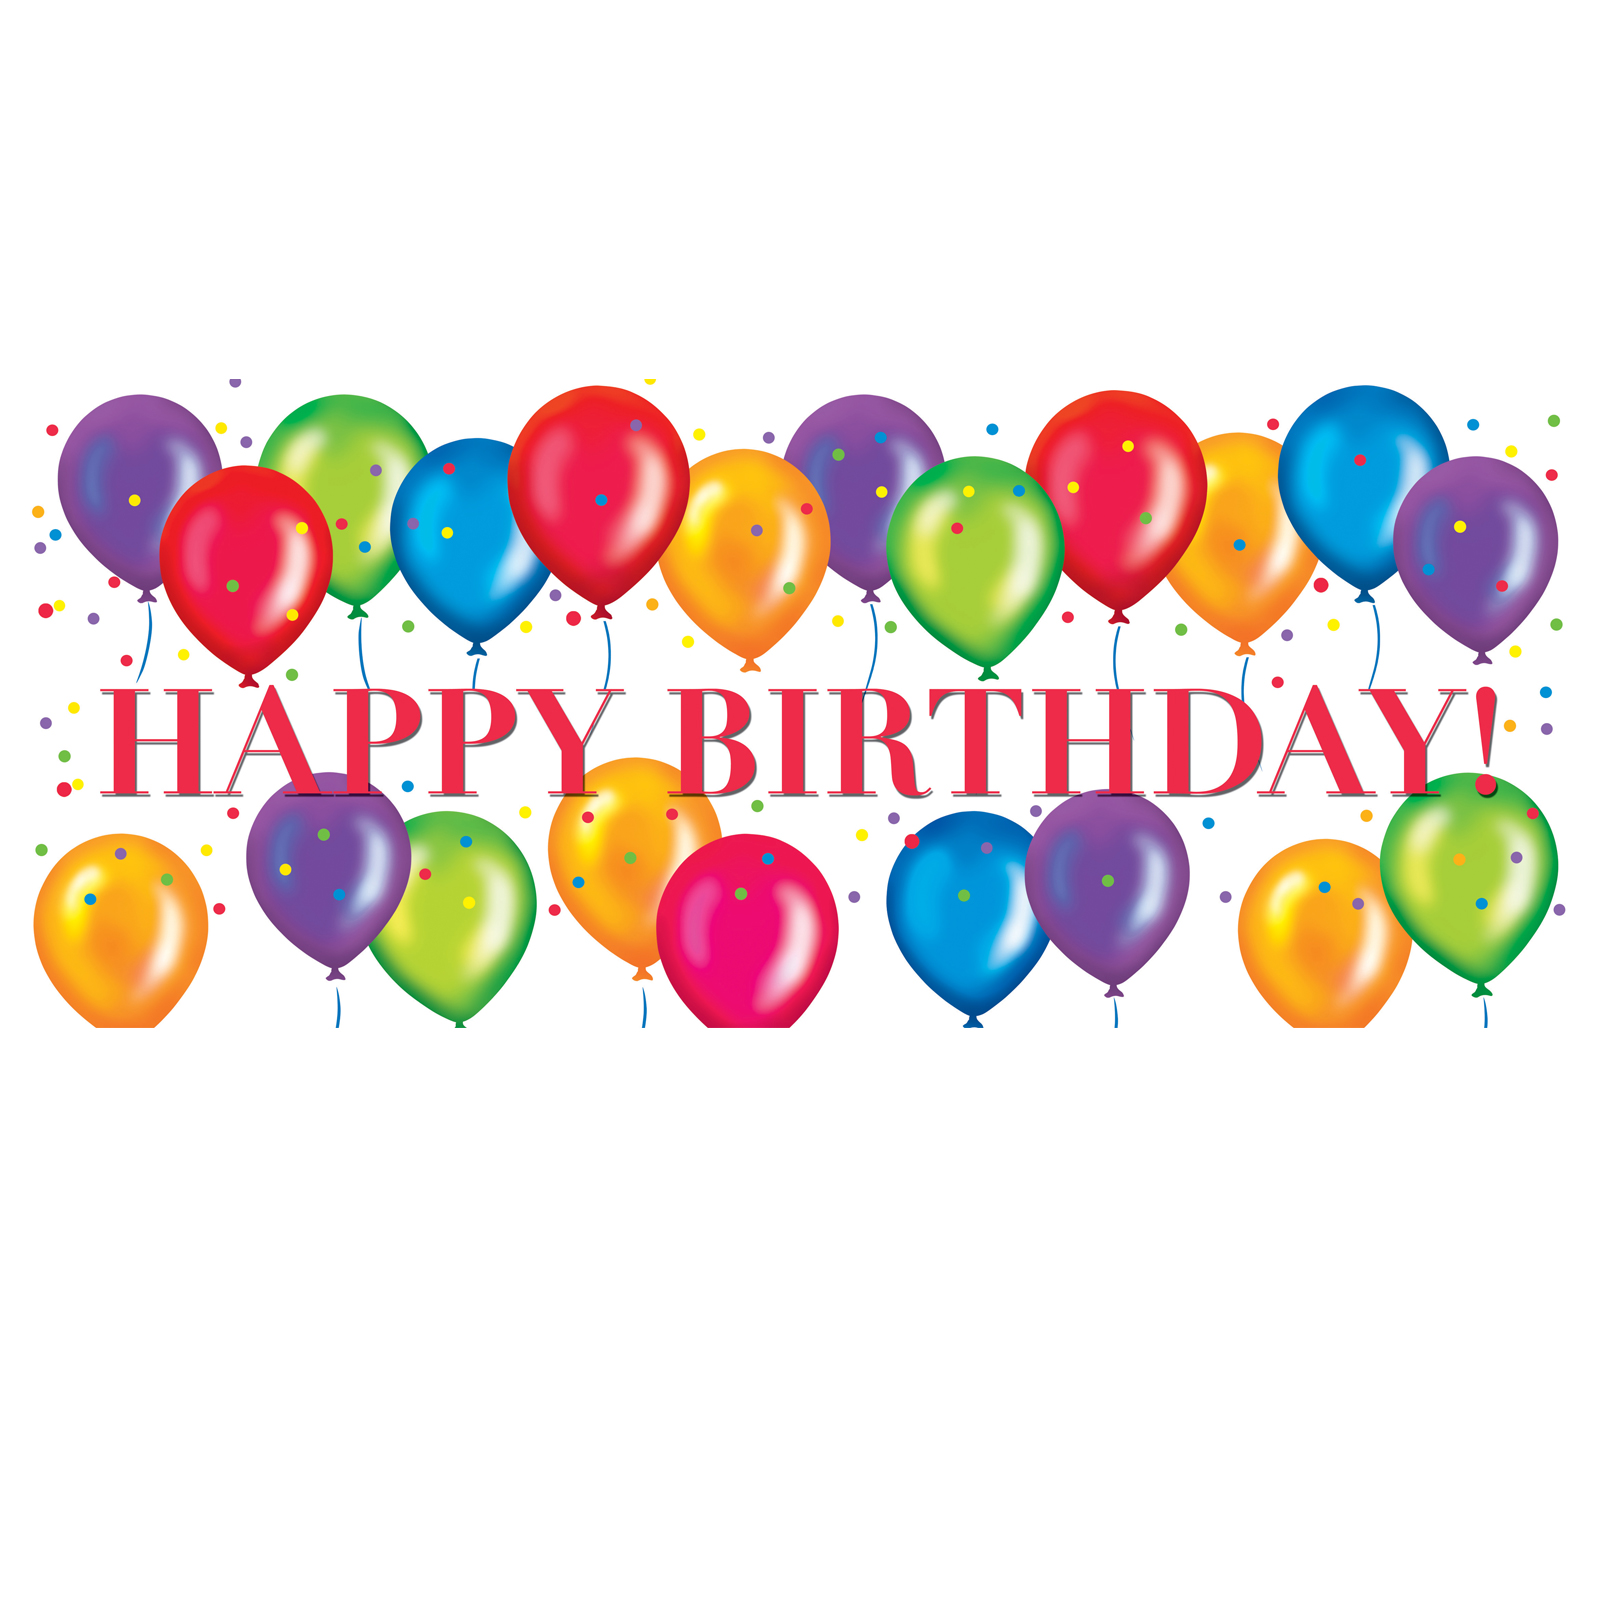 1600x1600 Happy Birthday Clip Art